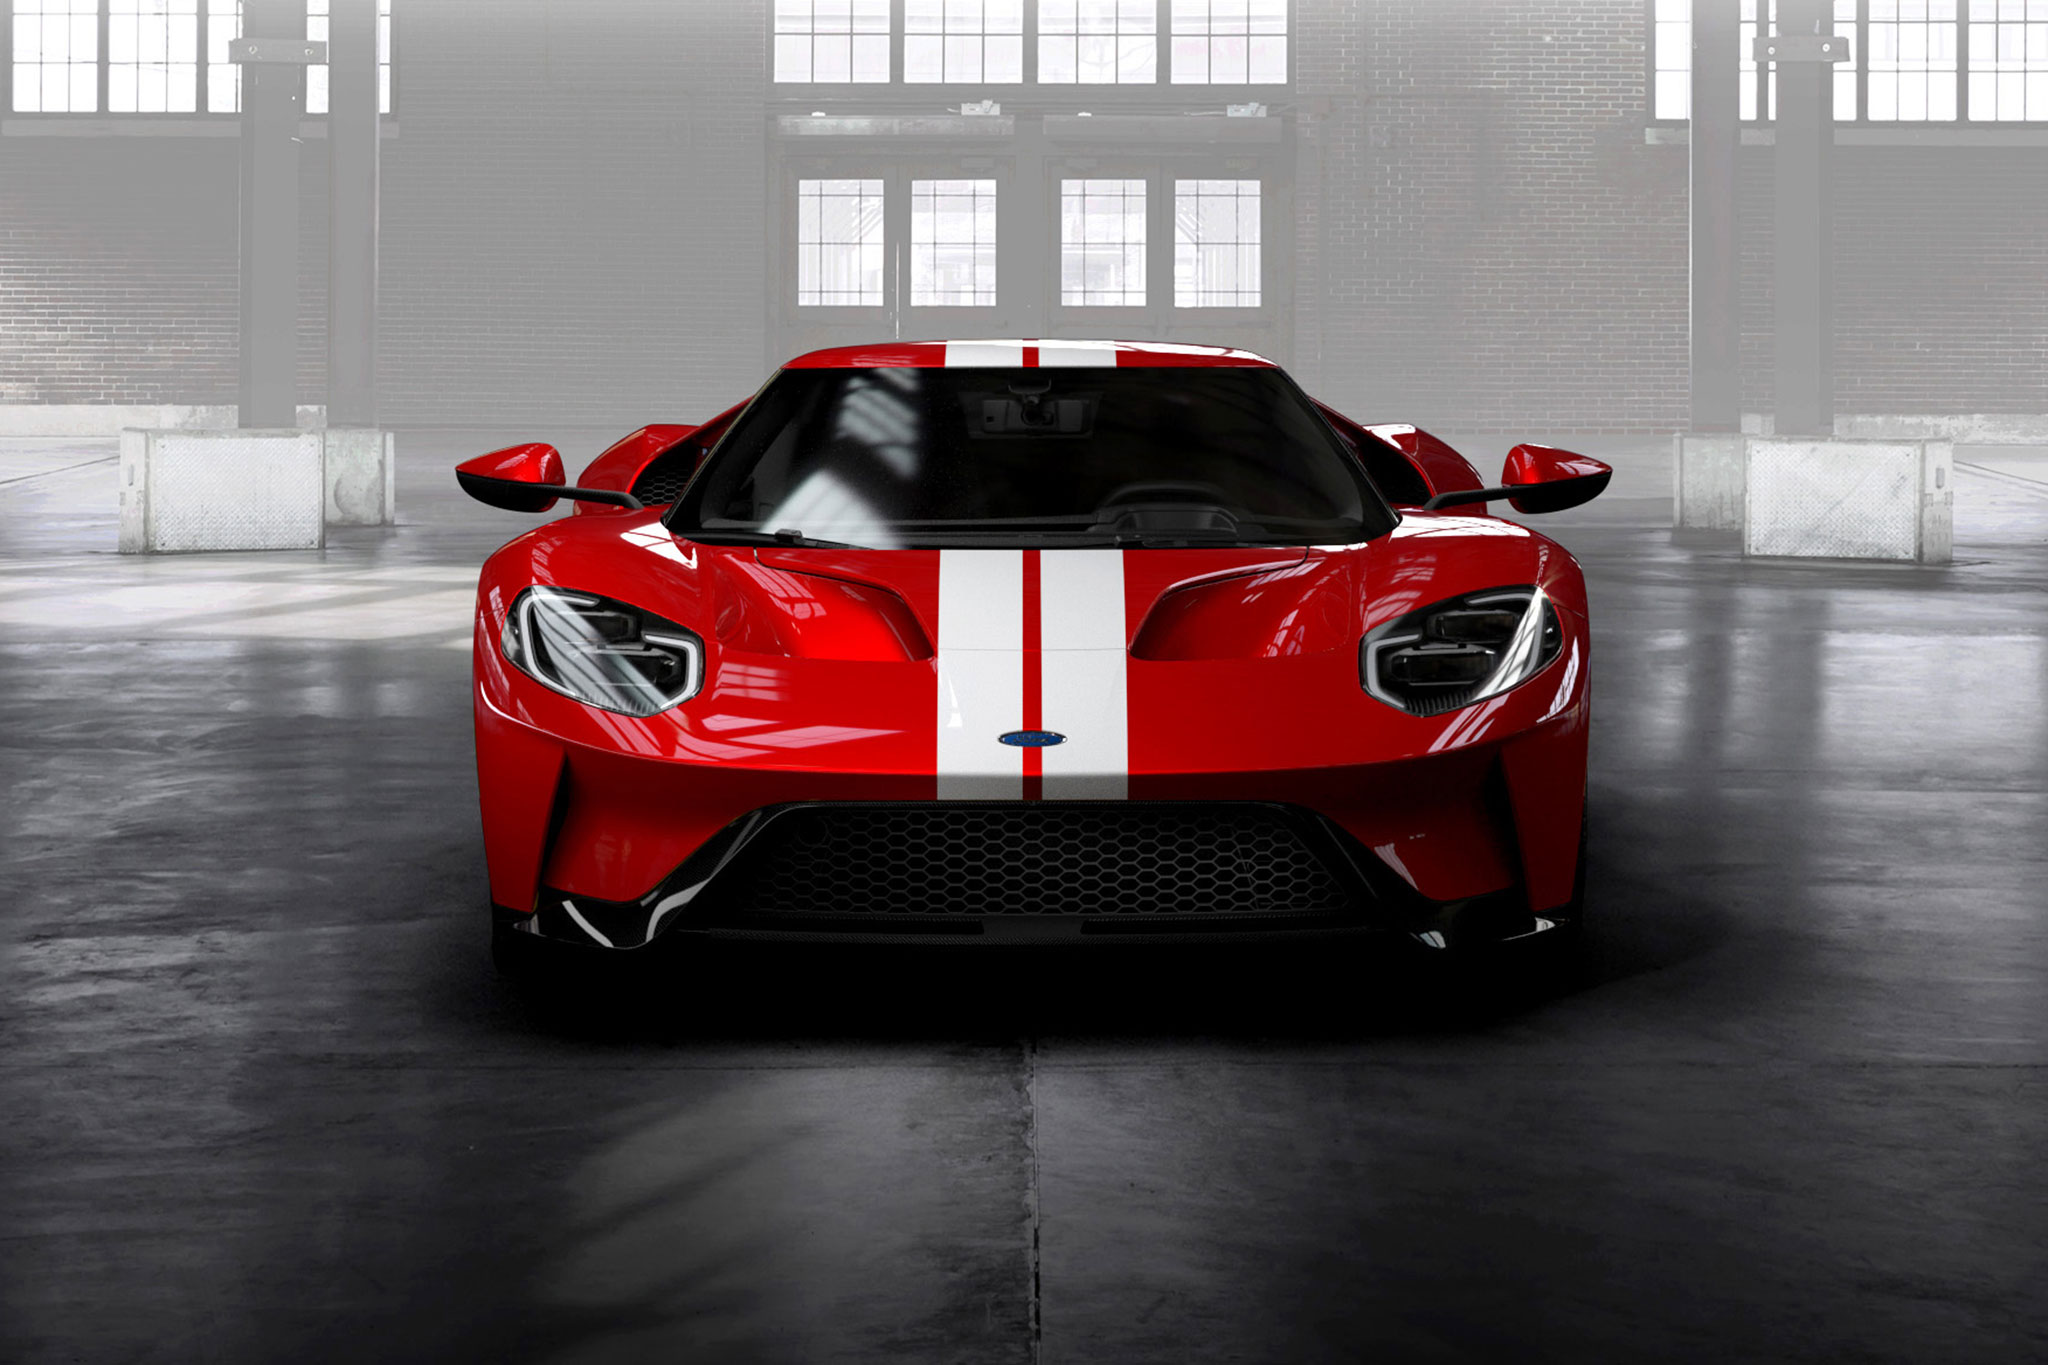 Ford Gt Images Ford Gt Configurator Front End Hd Wallpaper And Background Photos